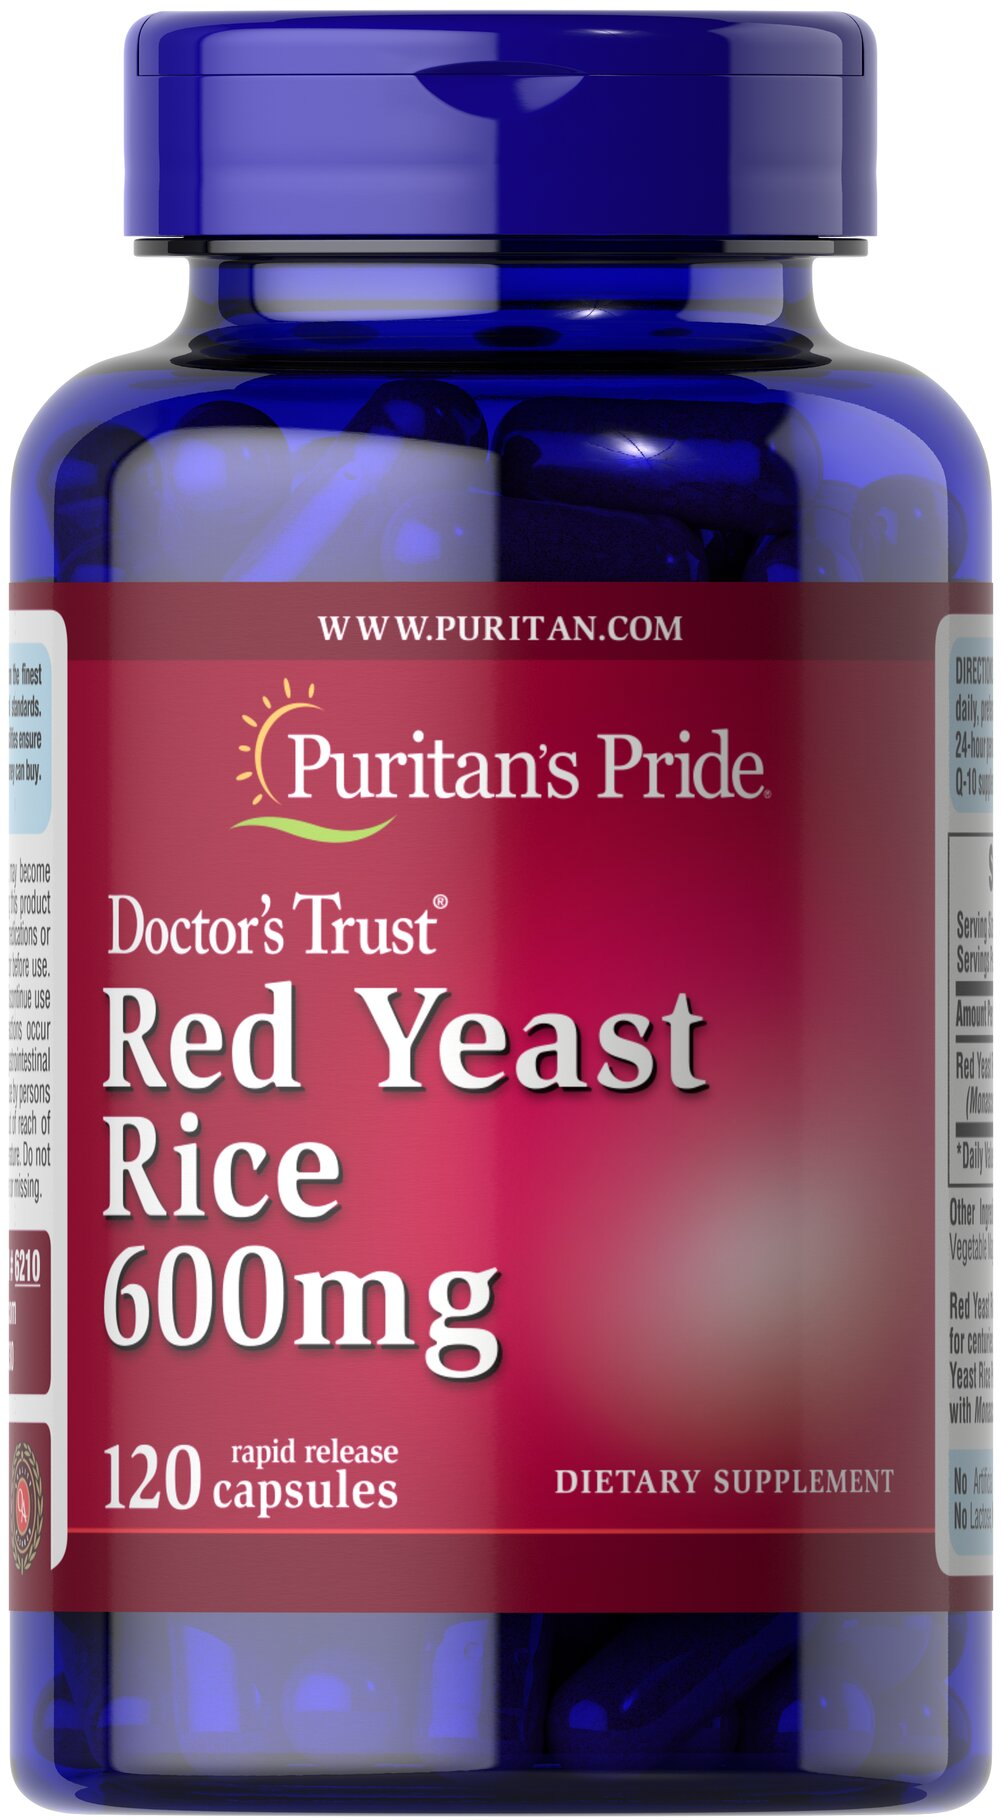 Red Yeast Rice 600 mg <p>Red Yeast Rice has been a staple food of the traditional Chinese diet for centuries. Valued as a main food source as well as for other uses, Red Yeast Rice can be a wonderful addition to your diet.**  Two capsules contain 1200 mg of Red Yeast Rice Powder from the Chinese botanical Monascus purpureus.</p> 120 Capsules 600 mg $13.11